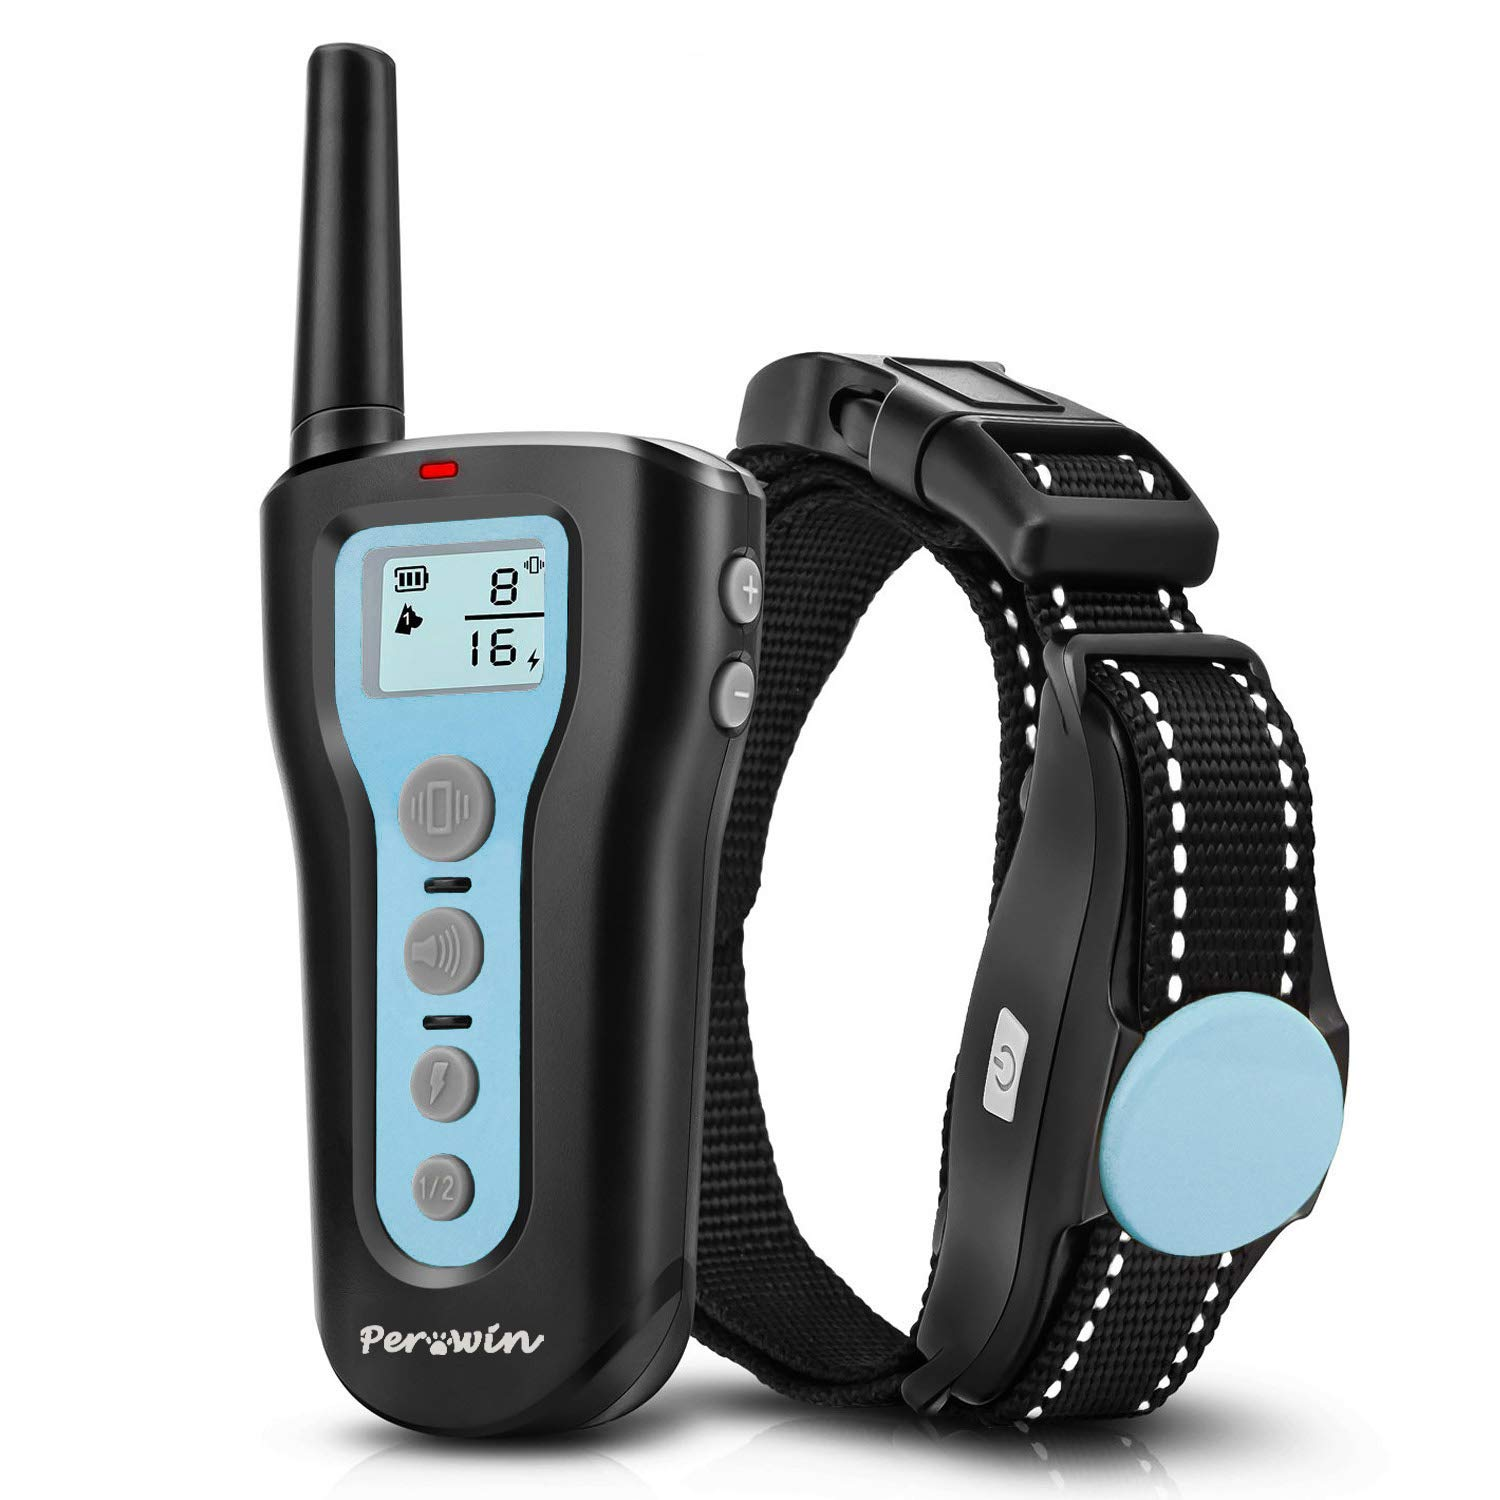 Perwin Dog Training Collar 1000ft Remote Dog Shock Collar Rechargeable Waterproof with Beep Vibration Harmless Safe Shock Collar for Small Medium Large Dogs